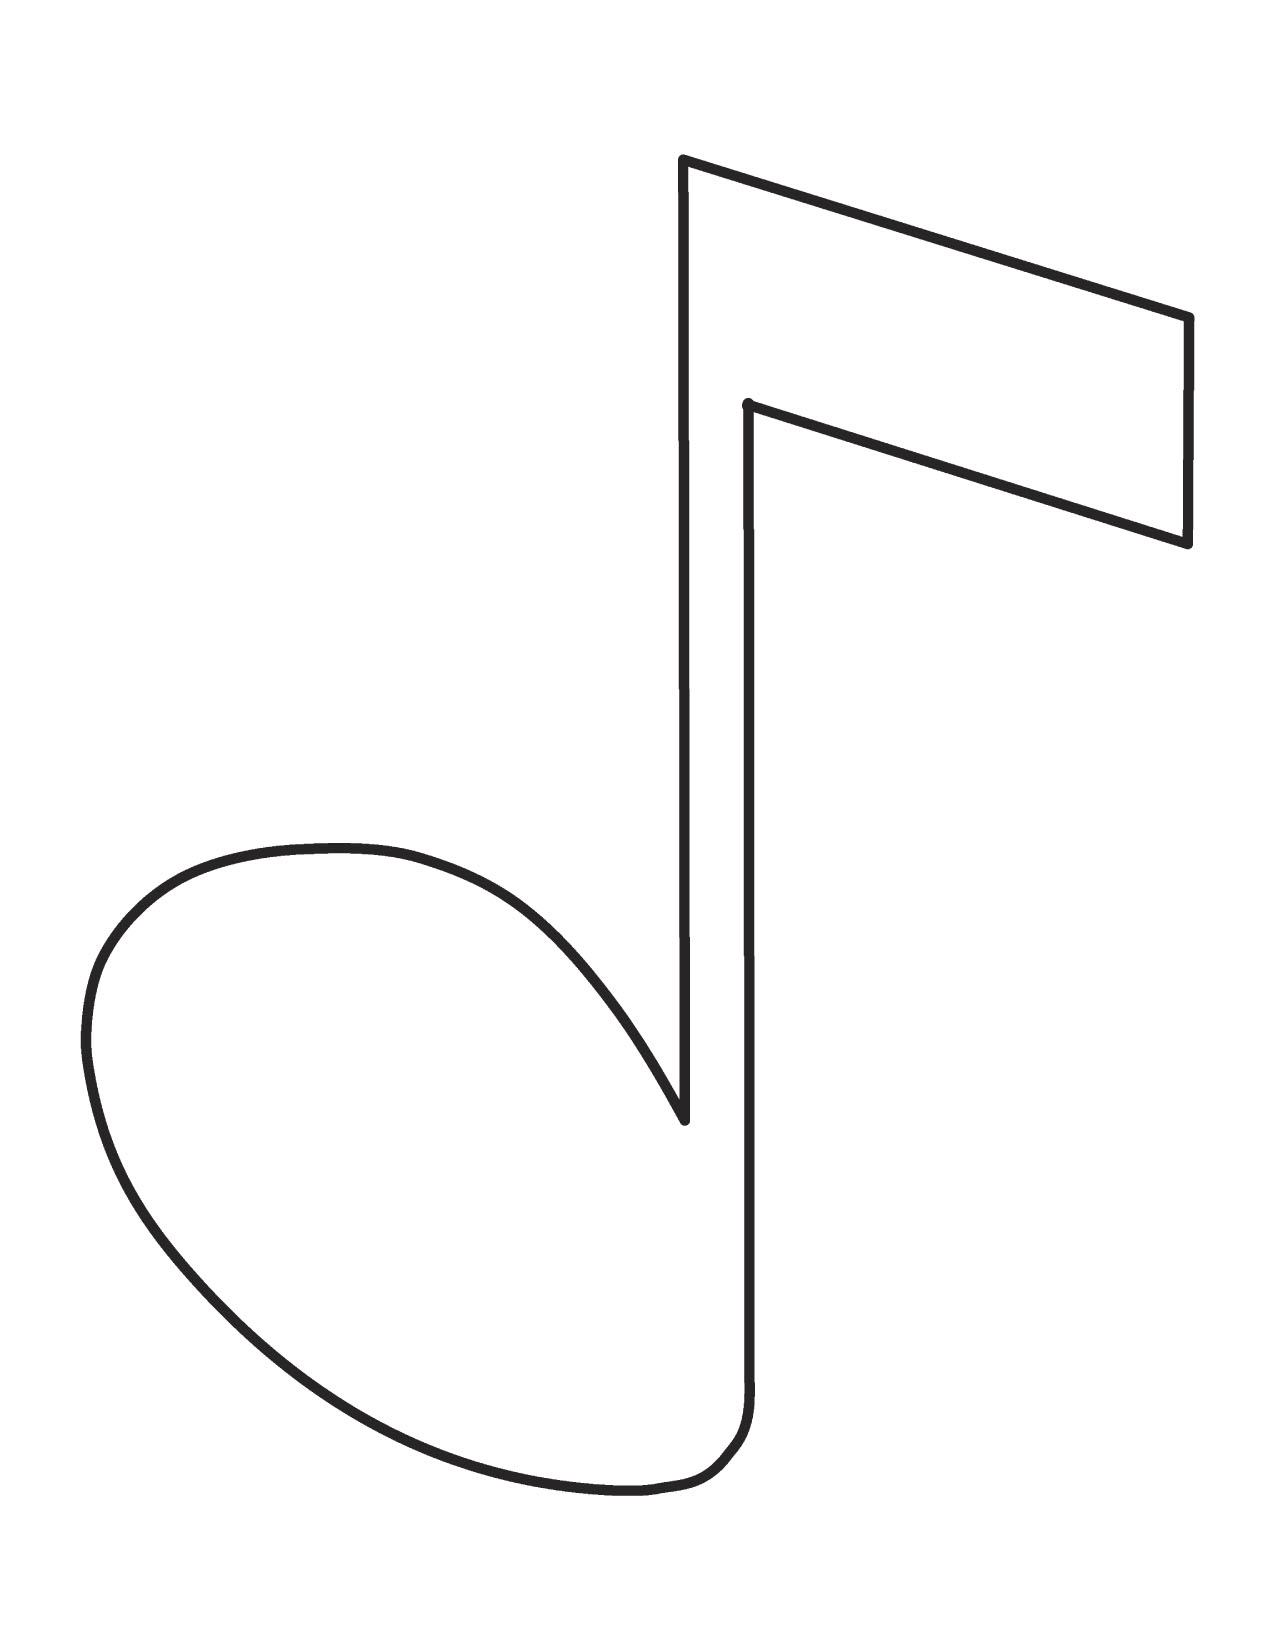 Free Printable Music Note Coloring Pages for Kids Download Of Coloring Pages Music Notes Bold Free Learning Fun Note Adult Download